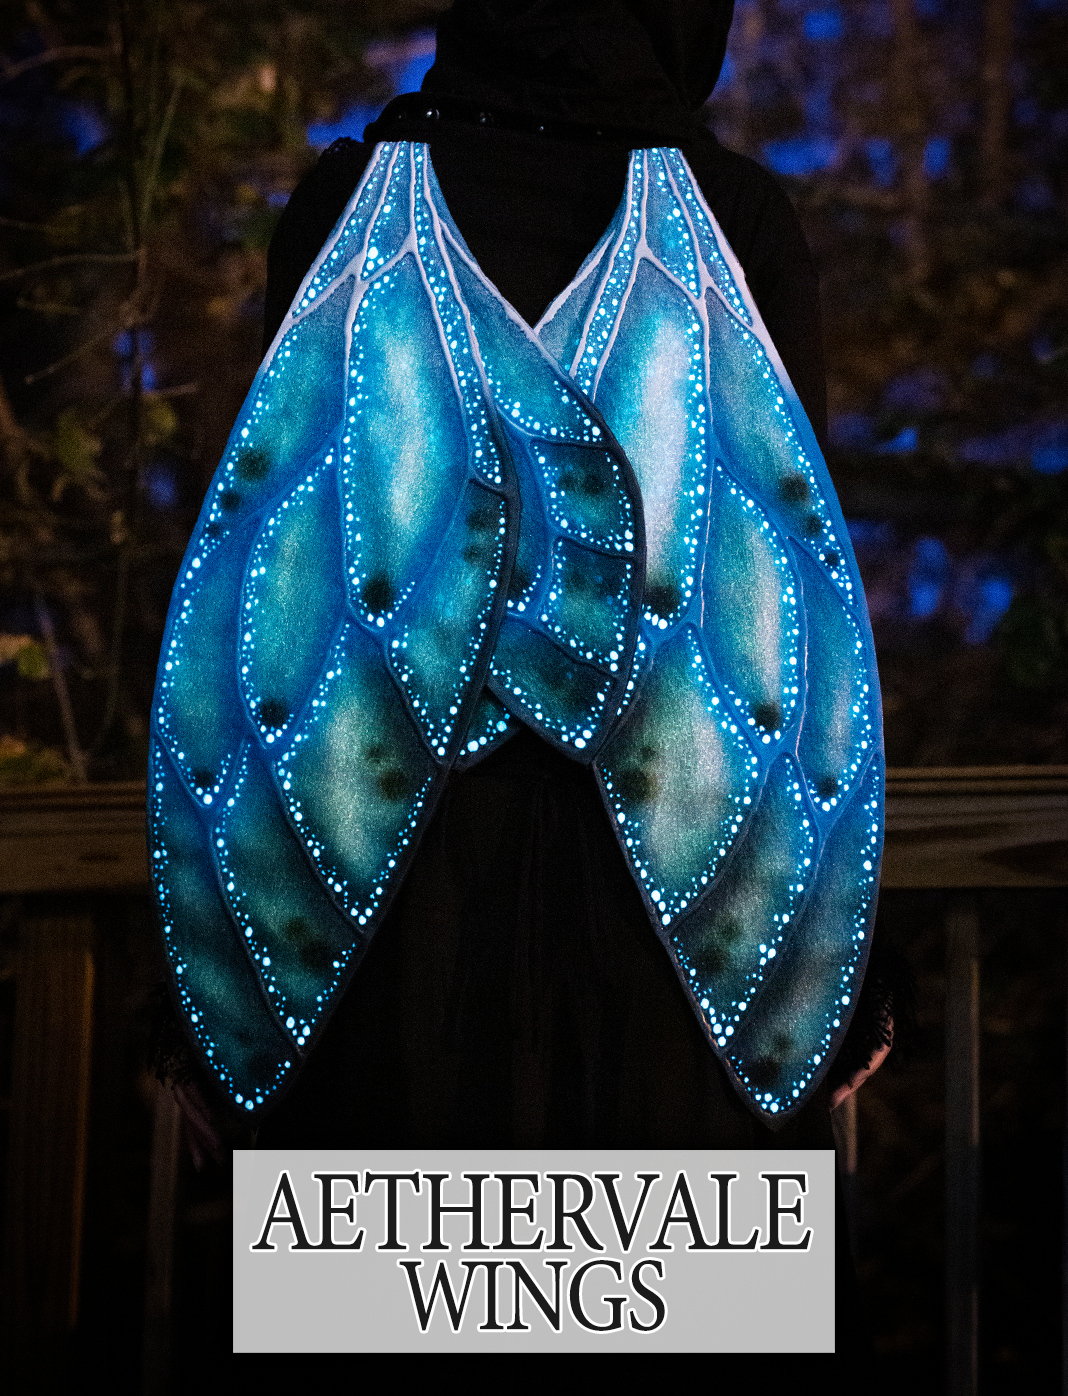 2020-aethervale-wings-mobile-banner.png